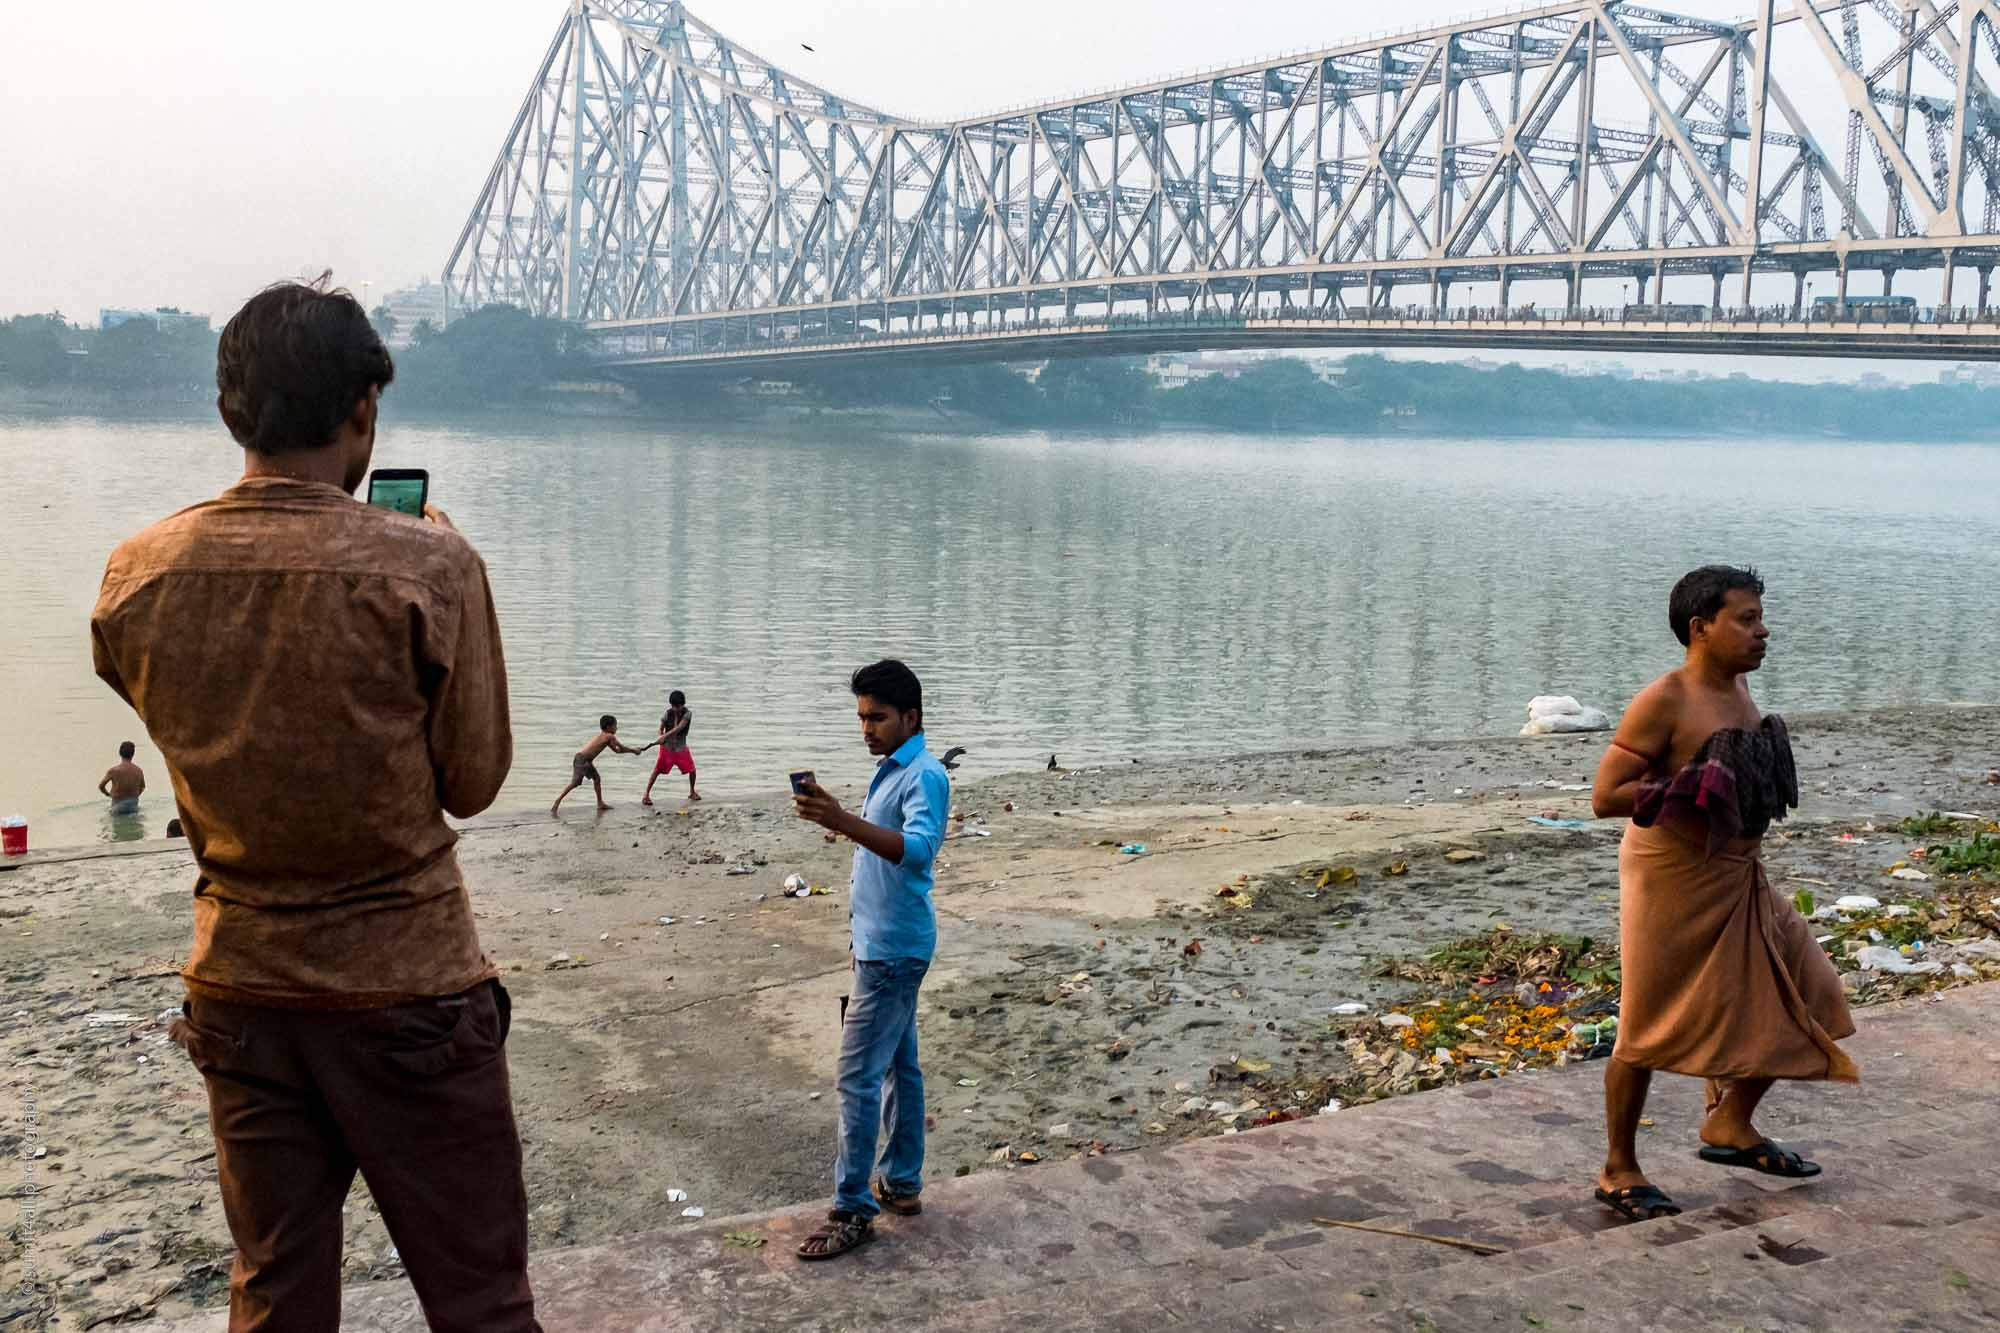 Activity on the ghats near the Howrah Bridge in Kolkata